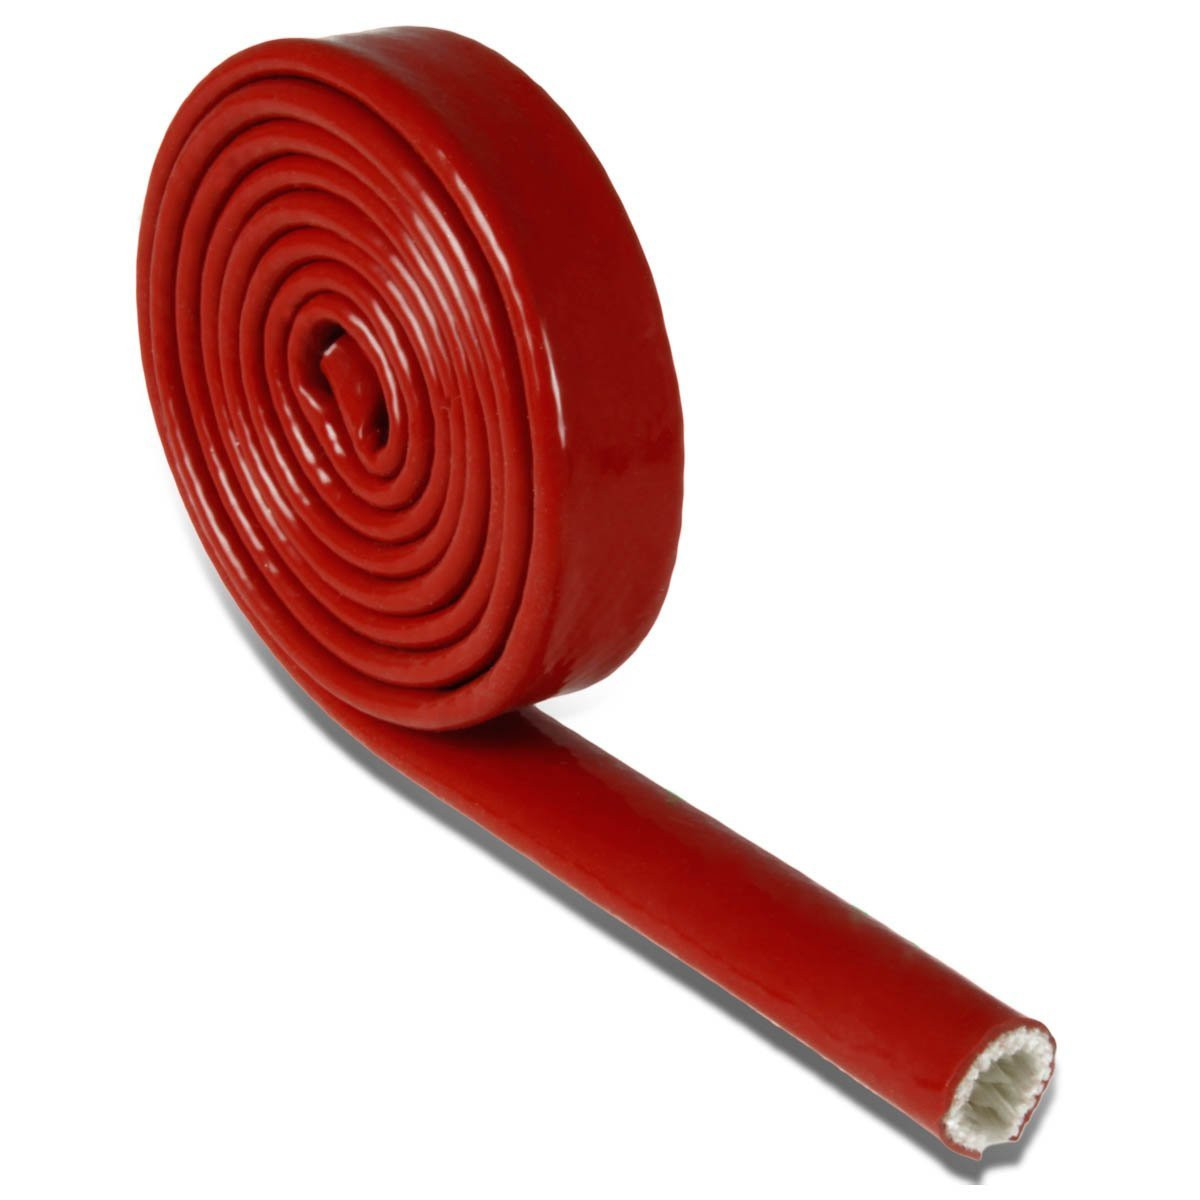 Pyrojacket Thermo Glass Fibre Firesleeve size 20.0mm - Red Oxide